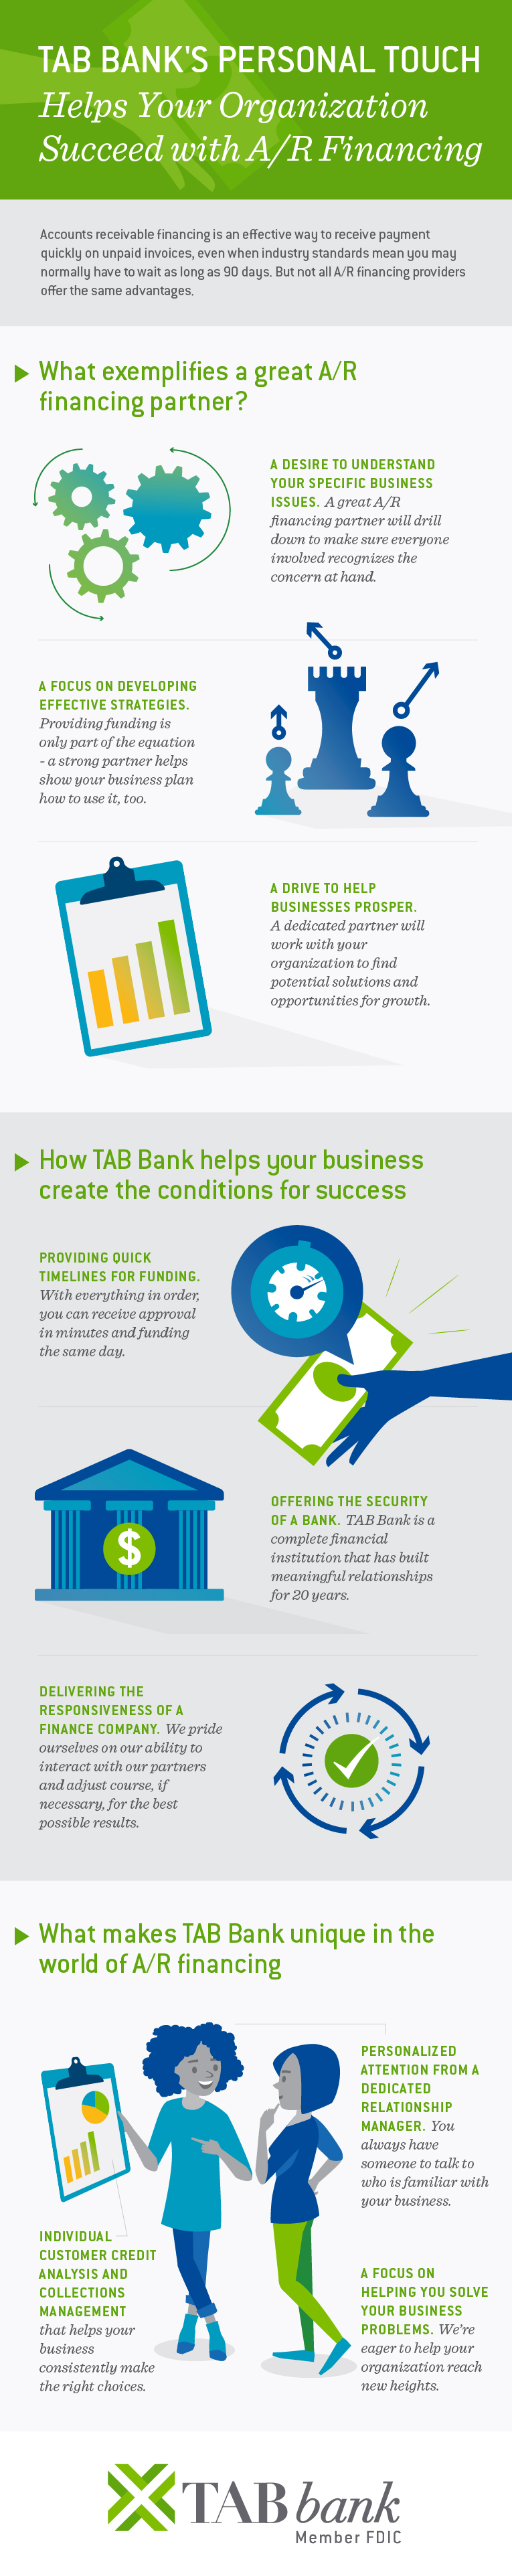 What makes TAB Bank unique in the world of A/R financing